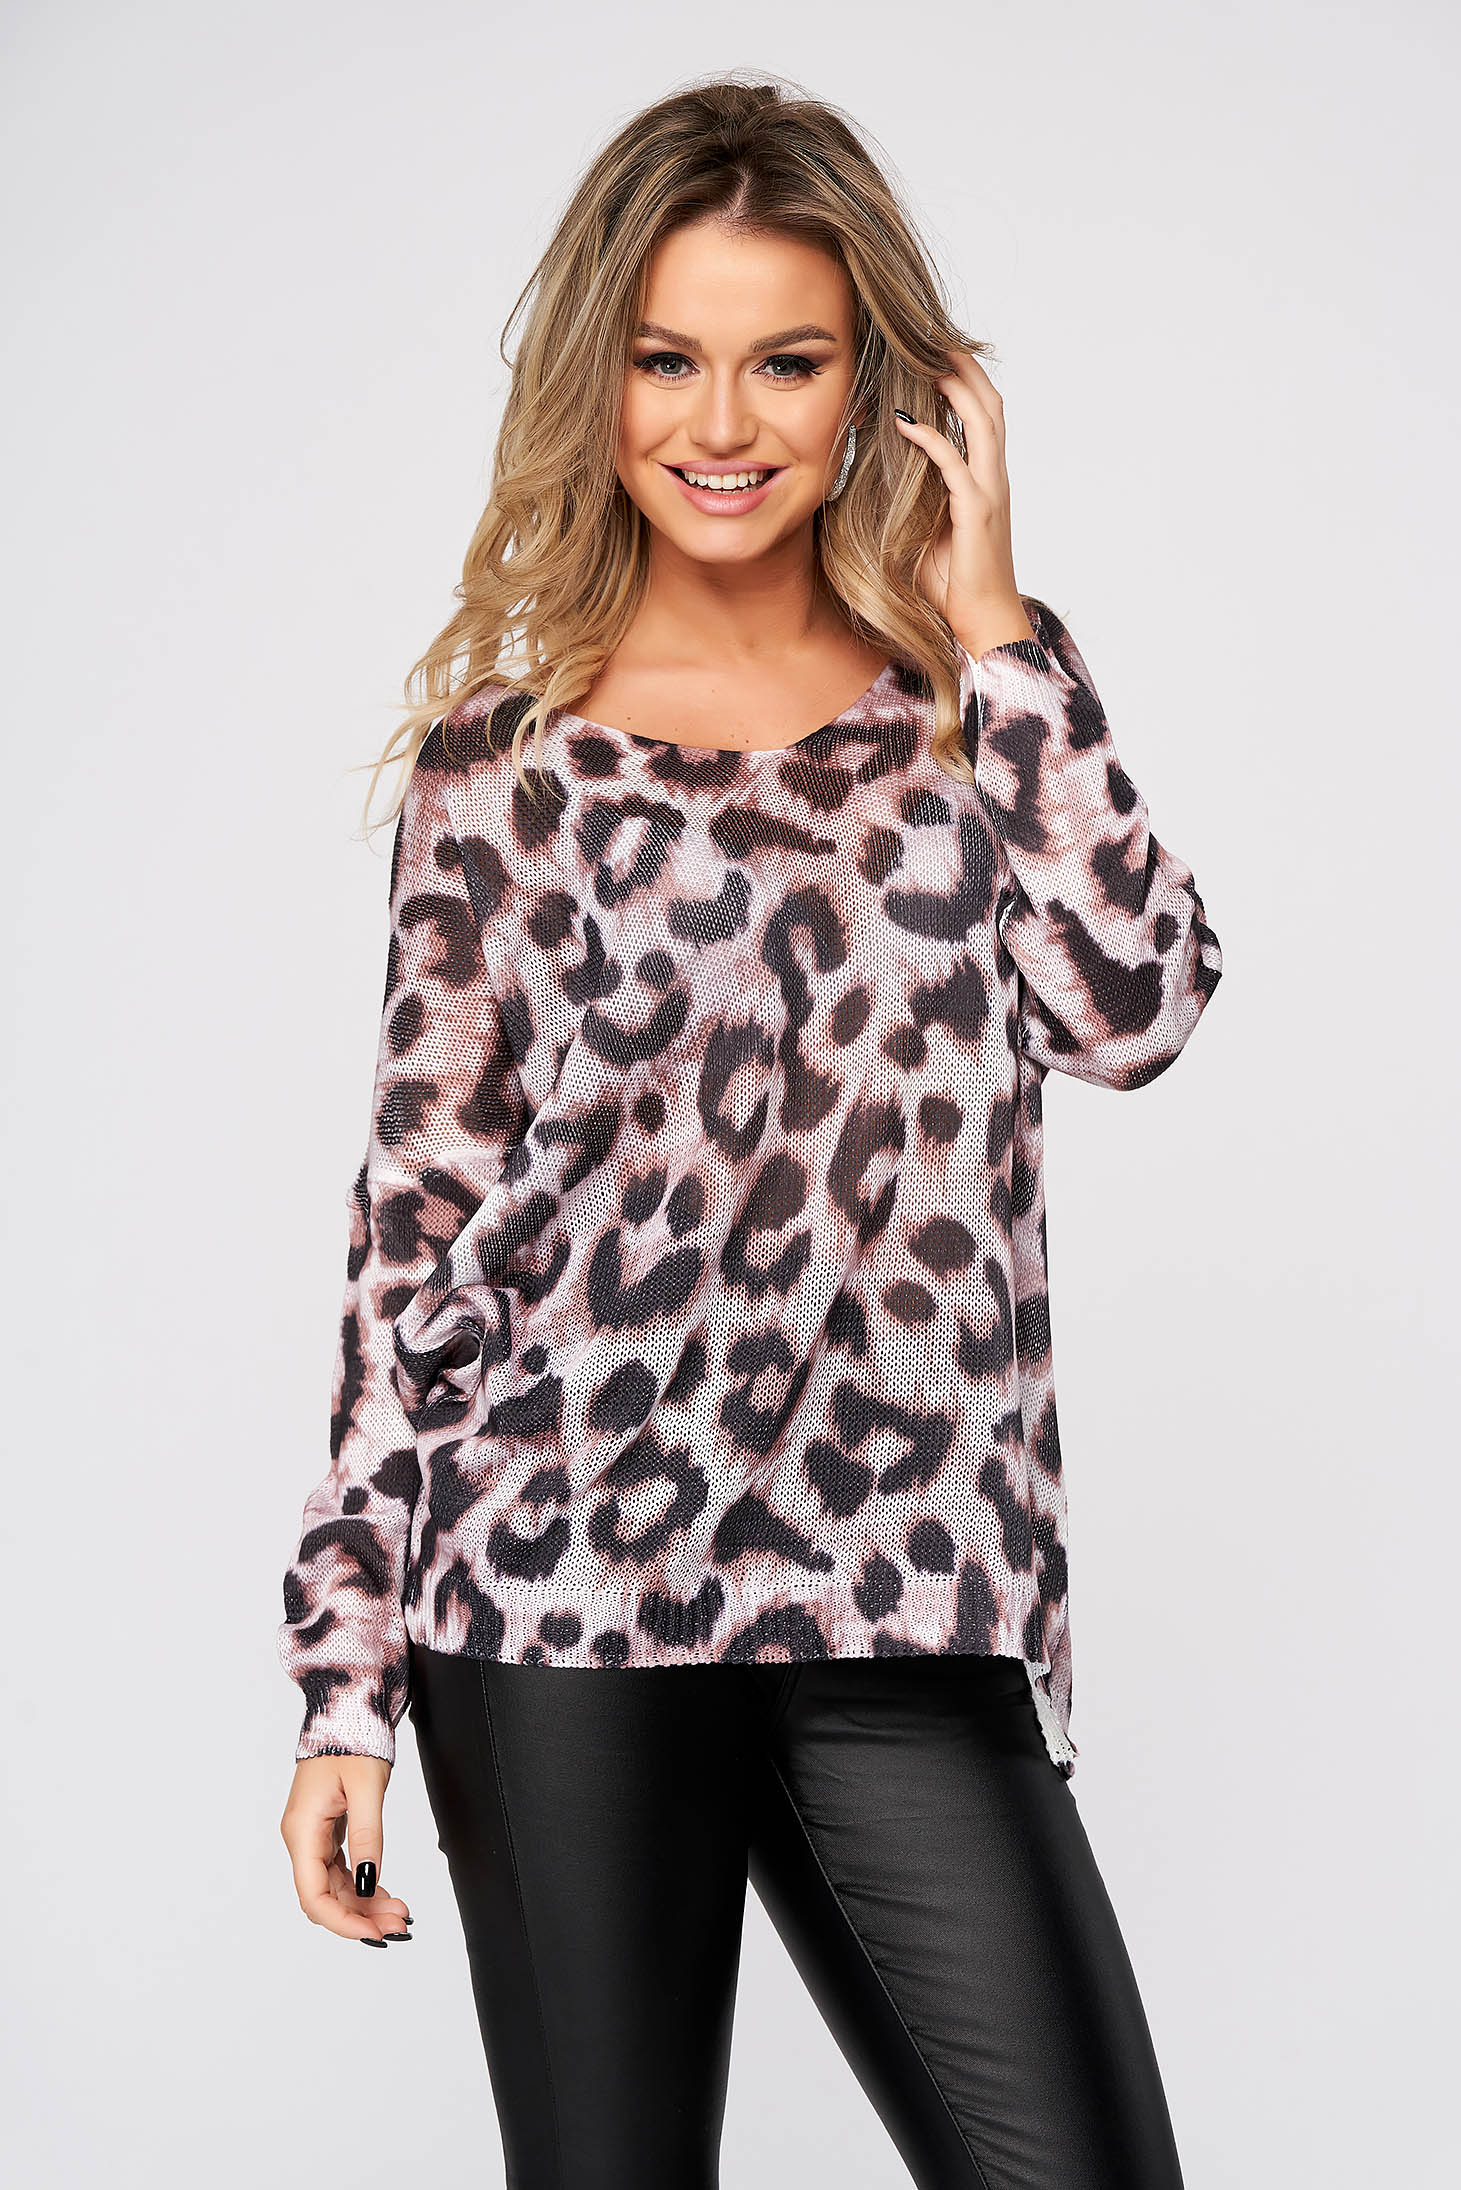 Pink women`s blouse casual flared with v-neckline knitted fabric animal print